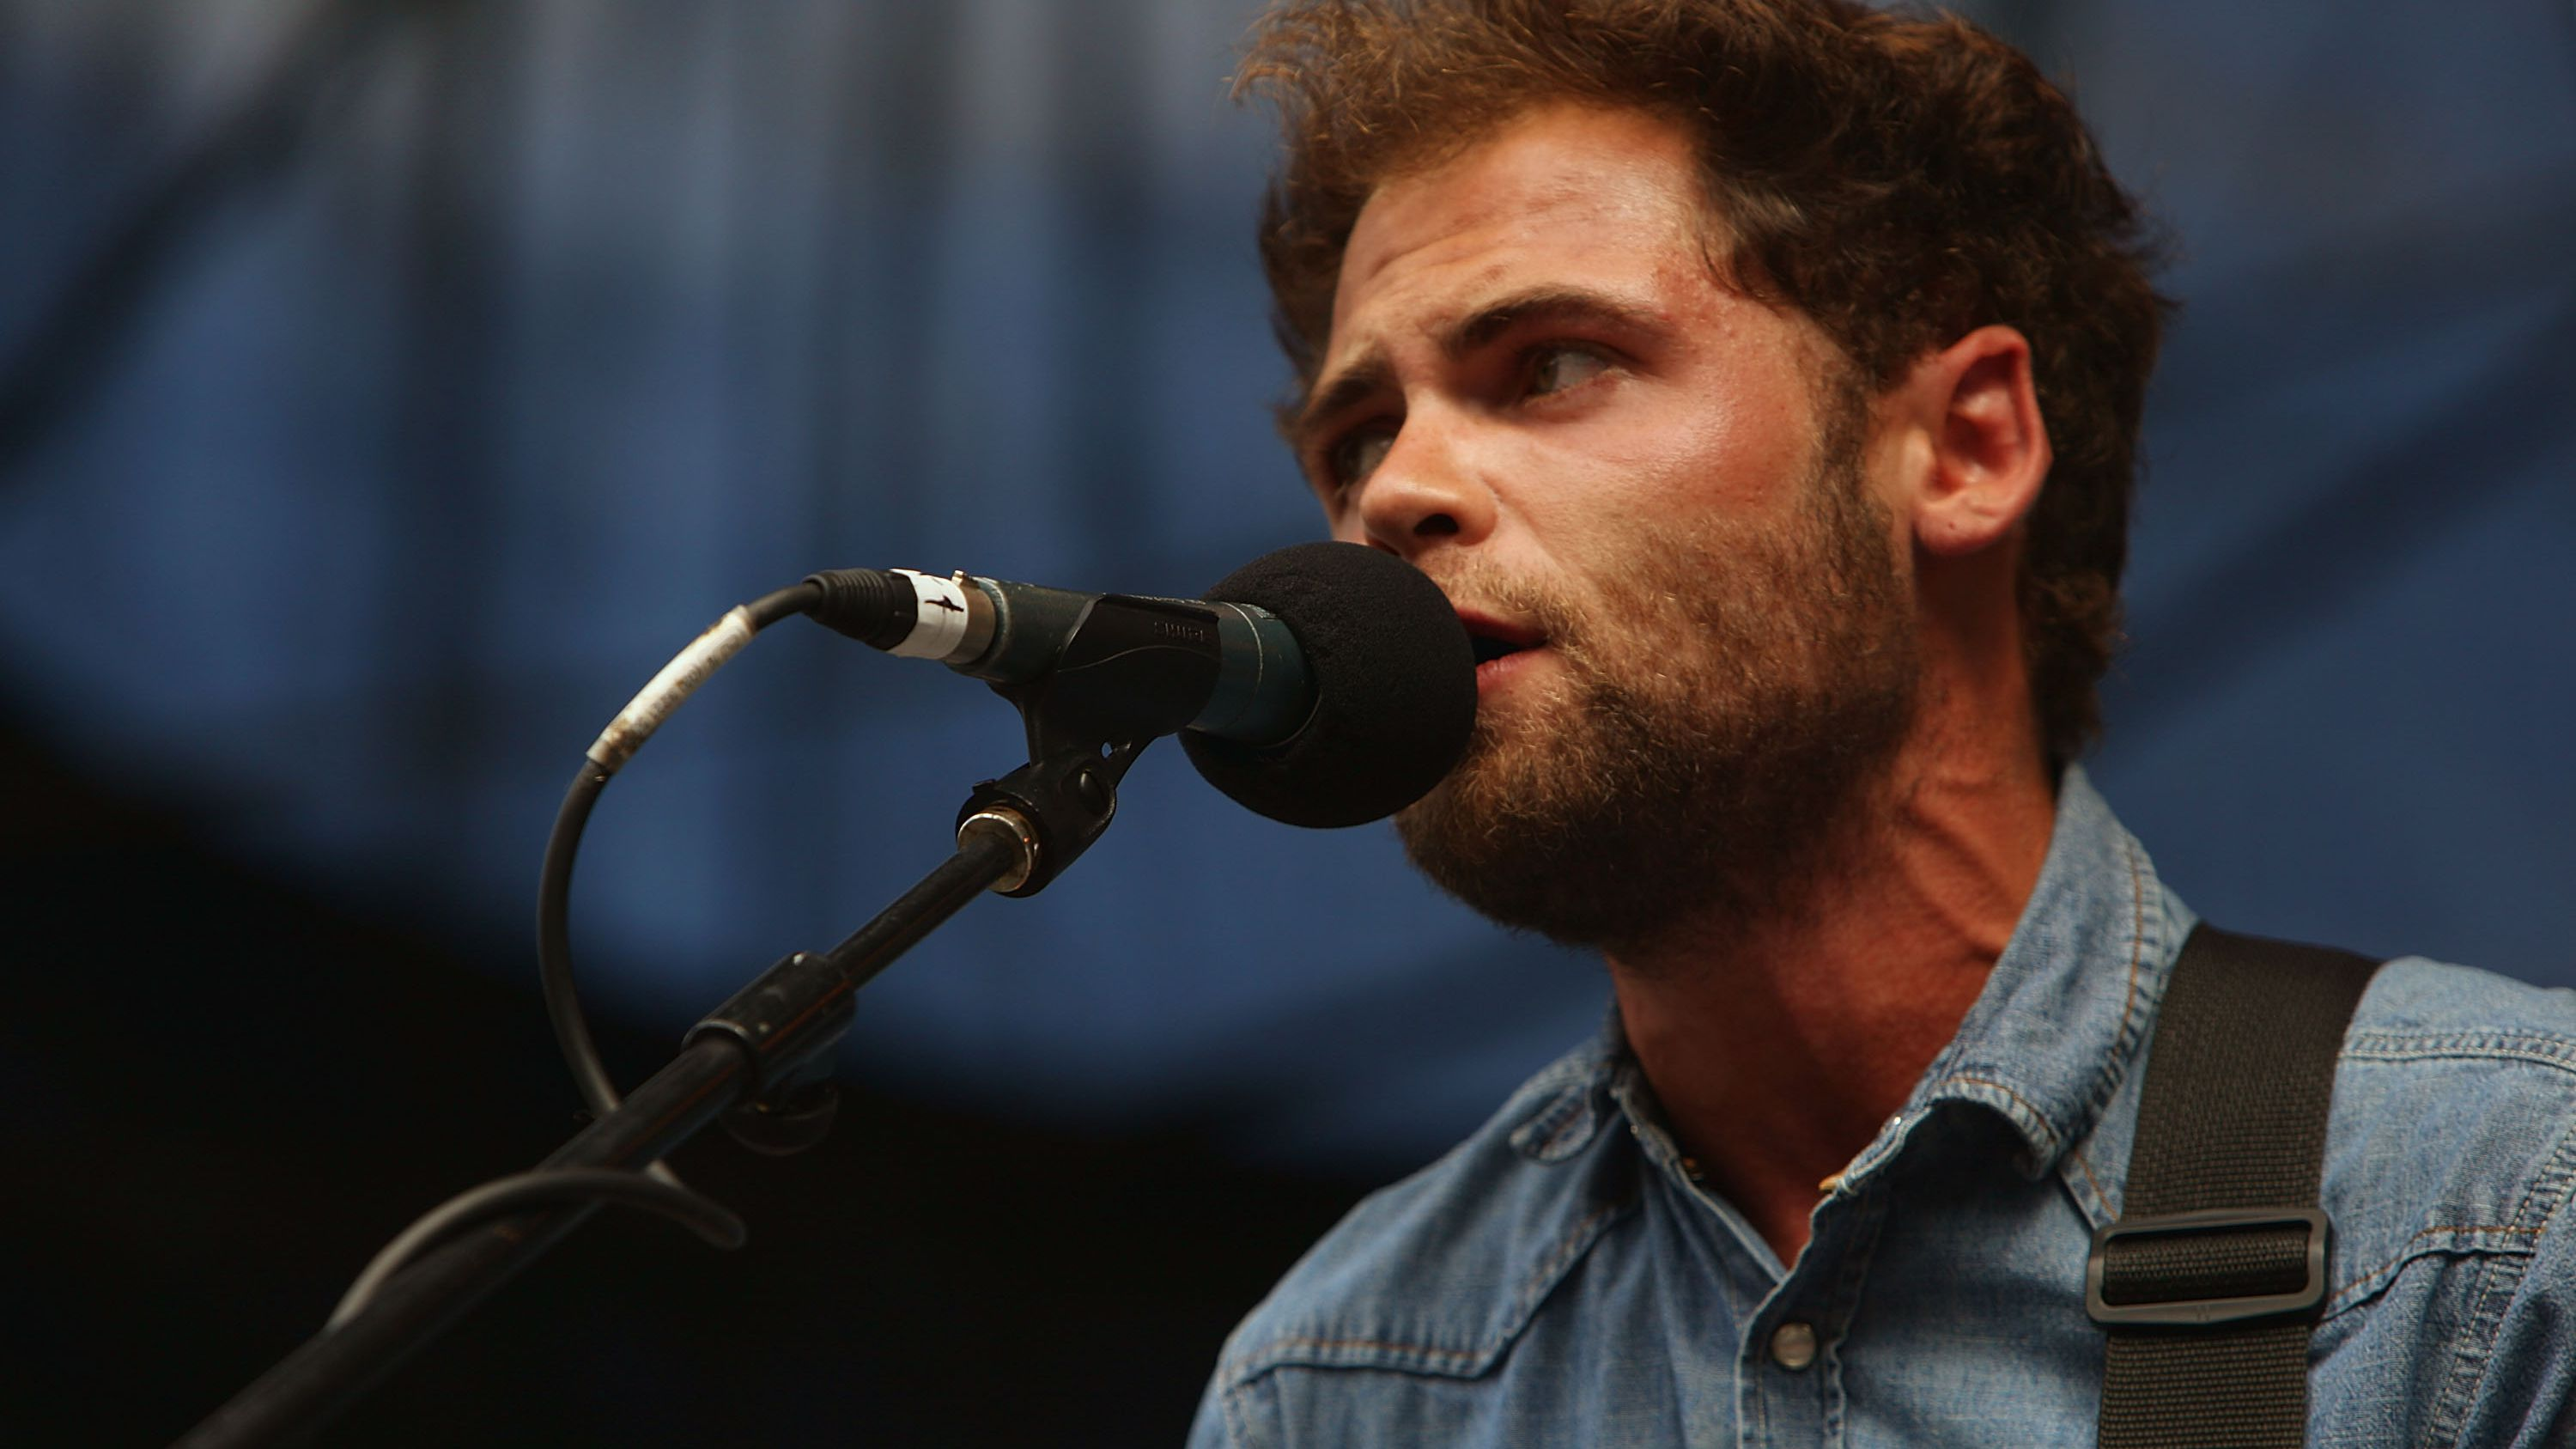 Passenger Let Her Go Review